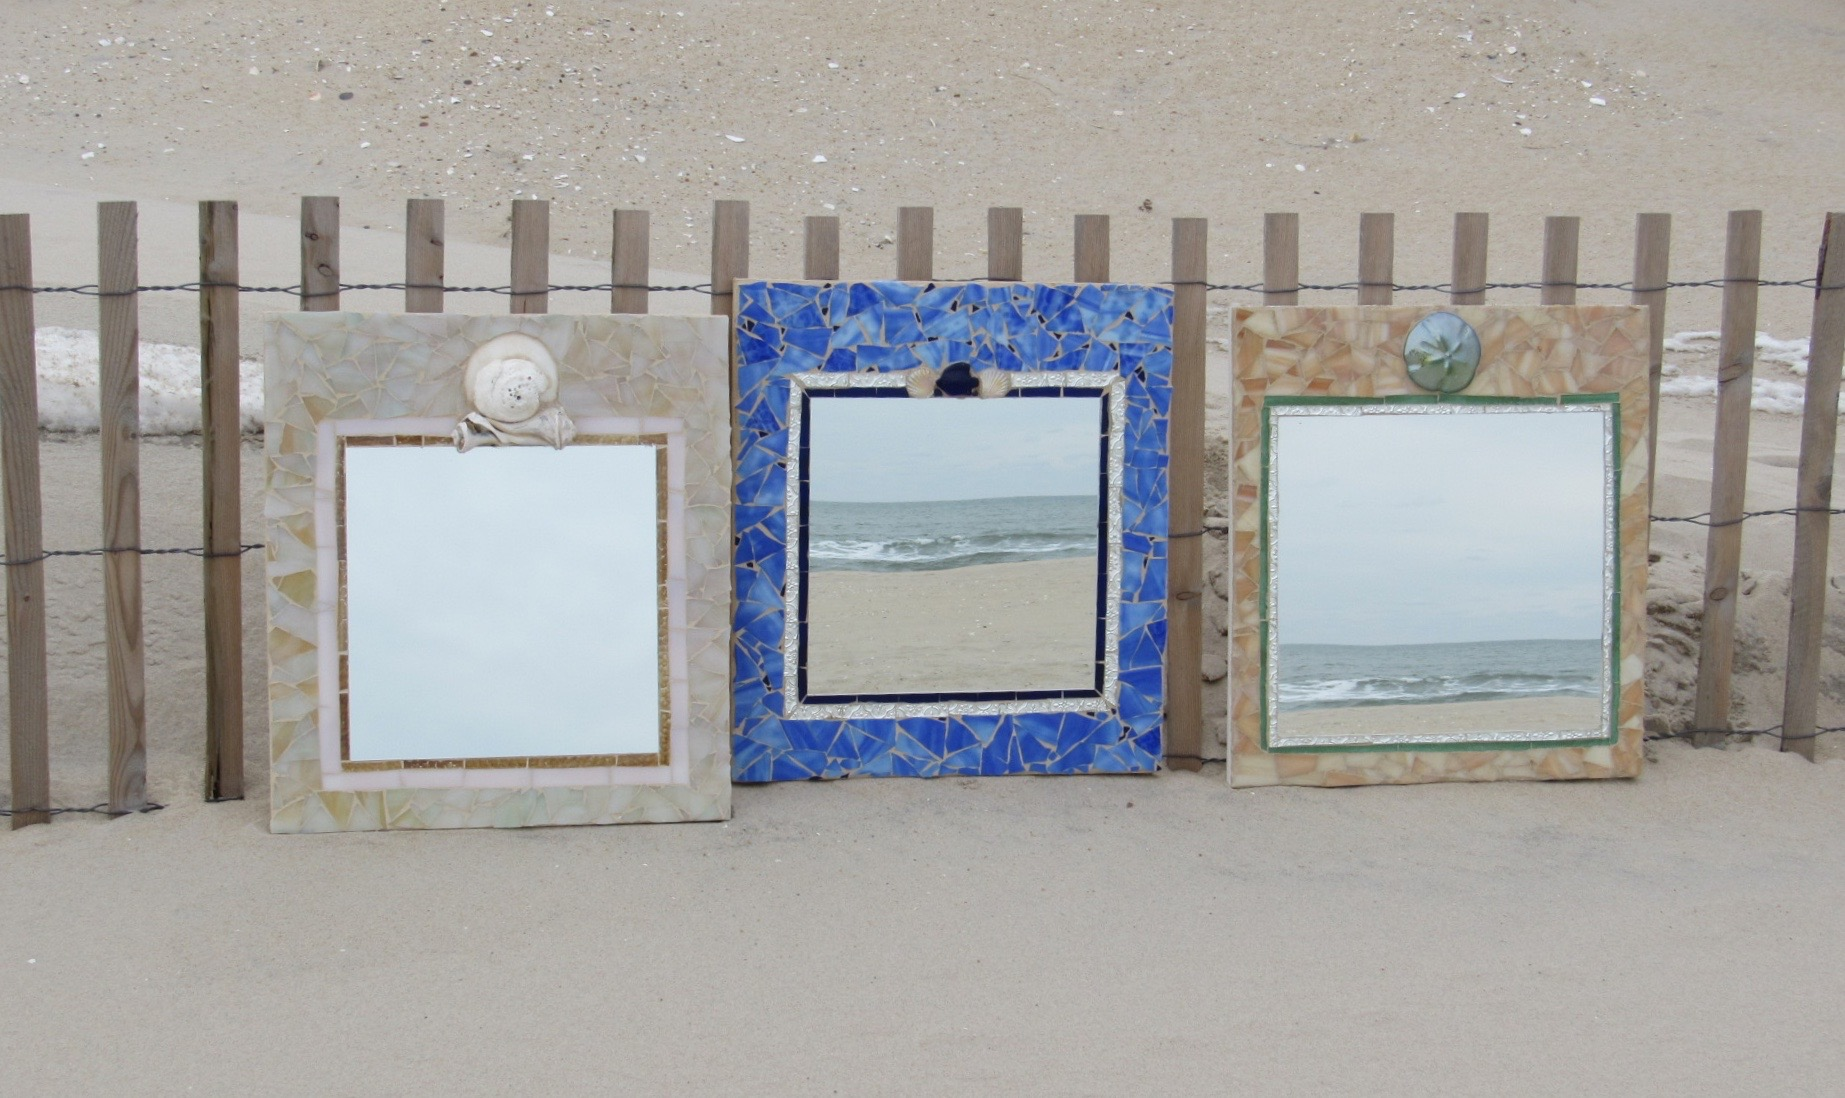 Happy Hour Mosaic Mirrors - Pre-registration required.Make your own 18¨ x 20¨ STUNNINGLY BEAUTIFUL mirror in this festive environment. Professional tools, materials, and expert instructions provided. Take your mirror home at the end of class.This is great for a girls activity night, bachelorette, date nights, birthdays and more!Come here for class then go out to dinner after…Good times!Every Friday, 5-8 PM - Pre-registration required.Price is $95 per person. No exceptions.Refreshments provided. YUM!HAPPY HOUR - By Appointment In The Off-Season